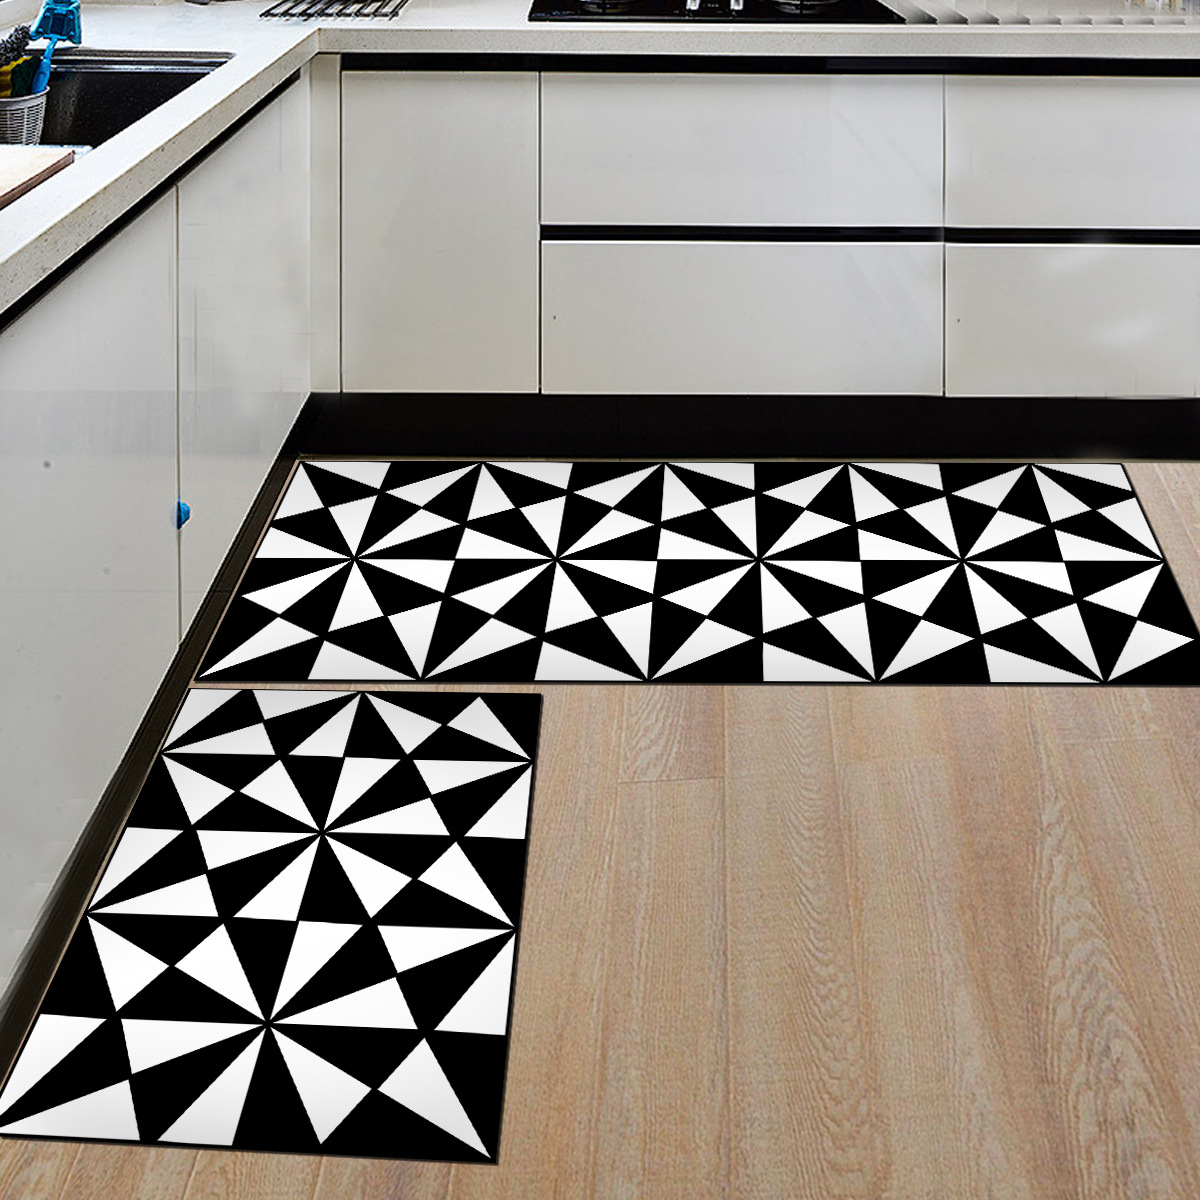 White Kitchen Floor Mats: Zeegle 2pcs/set Black And White Flannel Floor Mats For